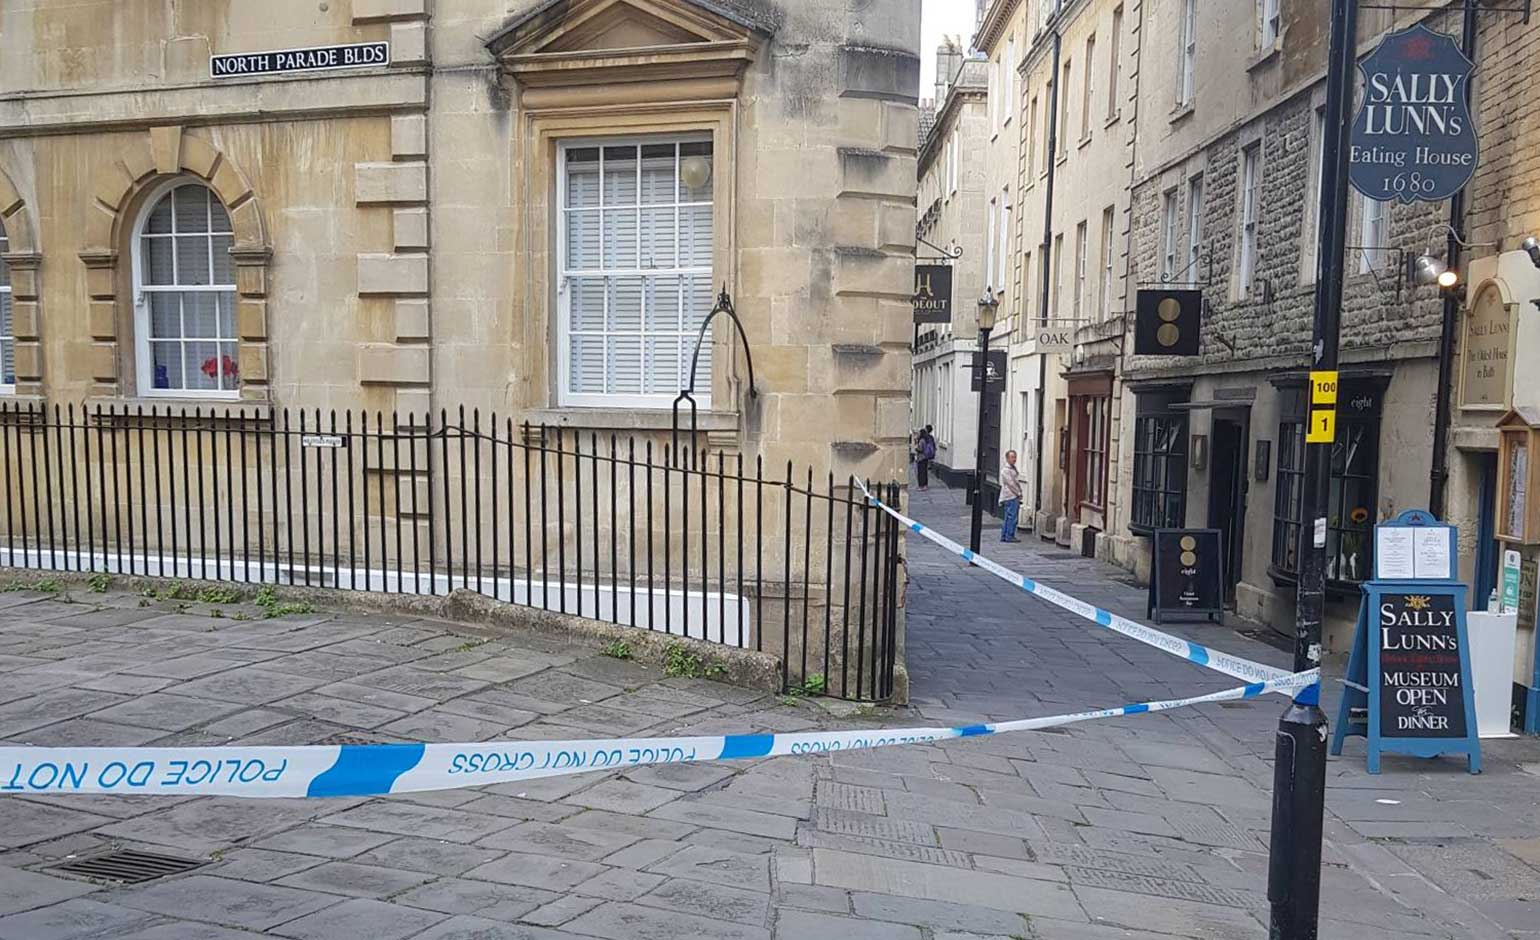 Investigation underway after serious sexual assault in the centre of Bath